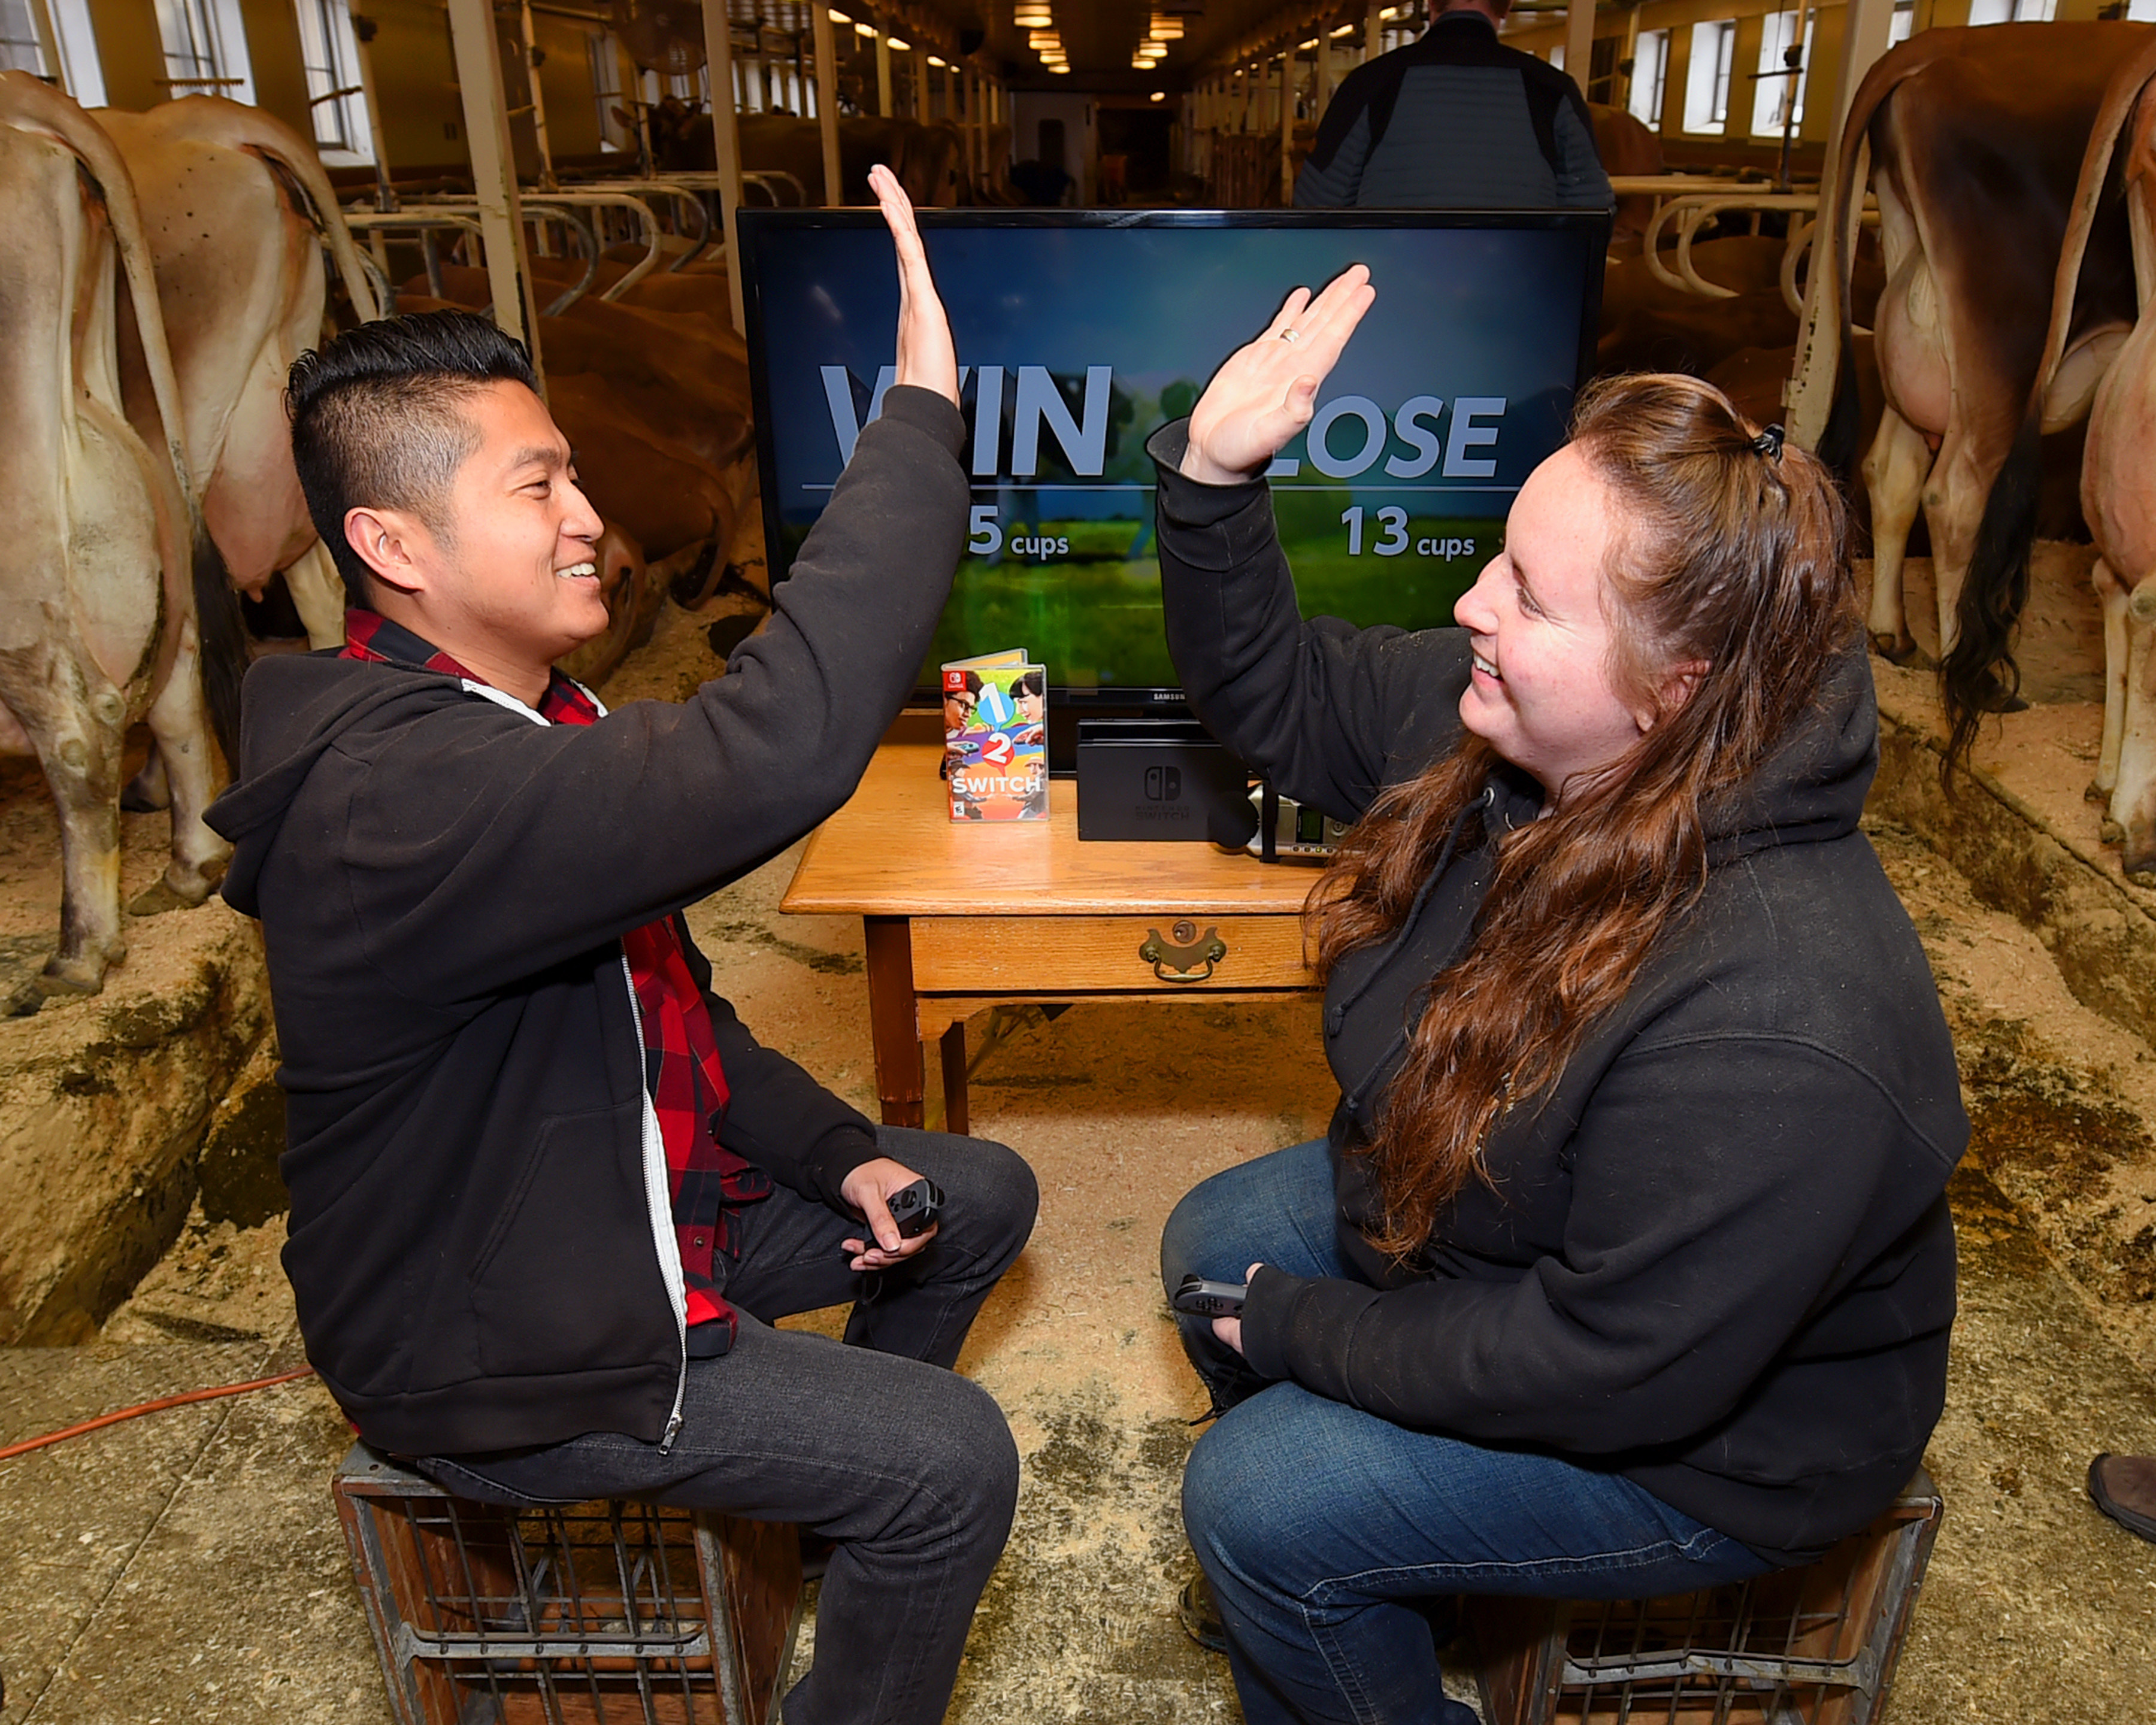 In this photo provided by Nintendo of America, gamers from Nintendo grabbed victory by the udder in a head-to-head challenge in Milk, one of 28 games in 1-2-Switch. The game, which uses the Nintendo Switch Joy-Con controllers to let players compete in fun and outrageous activities, launched worldwide alongside Nintendo Switch on March 3. (Photo: Business Wire)